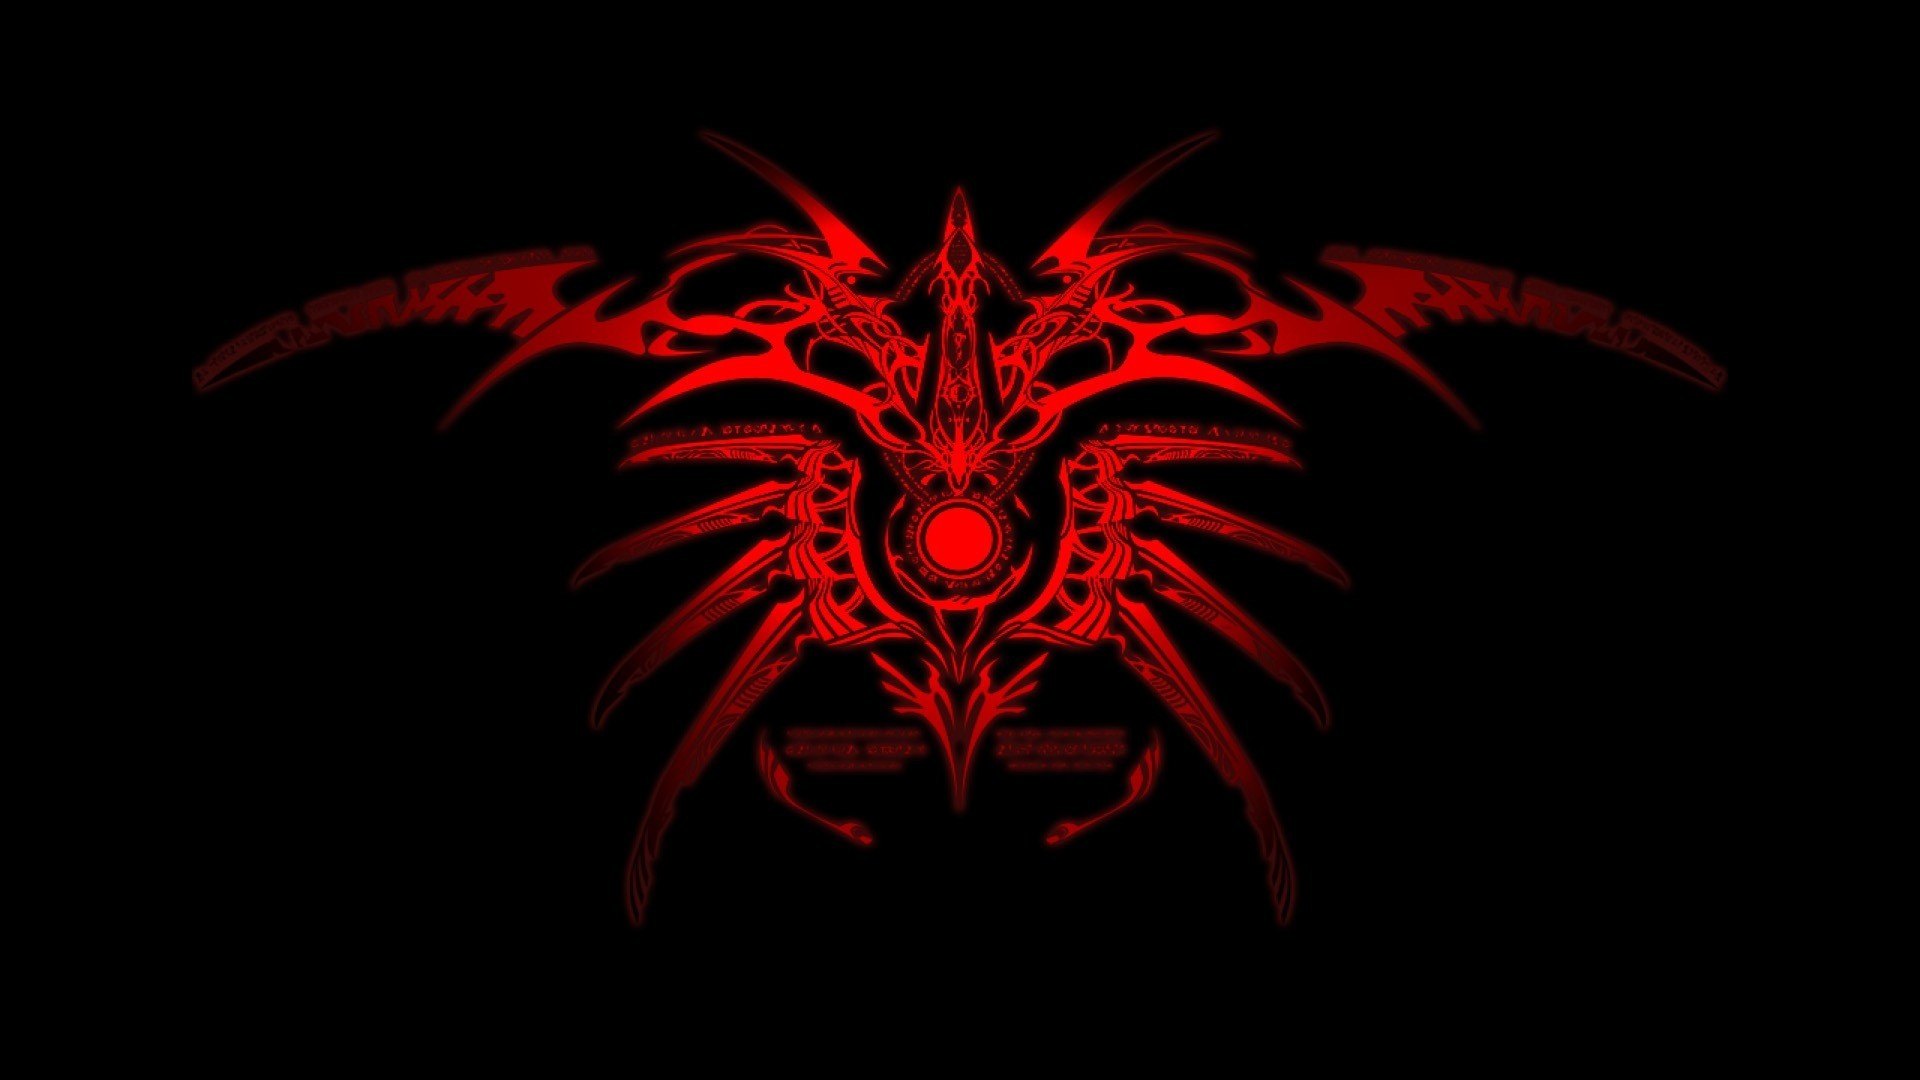 Red Eyes Darkness Metal Dragon Wallpaper